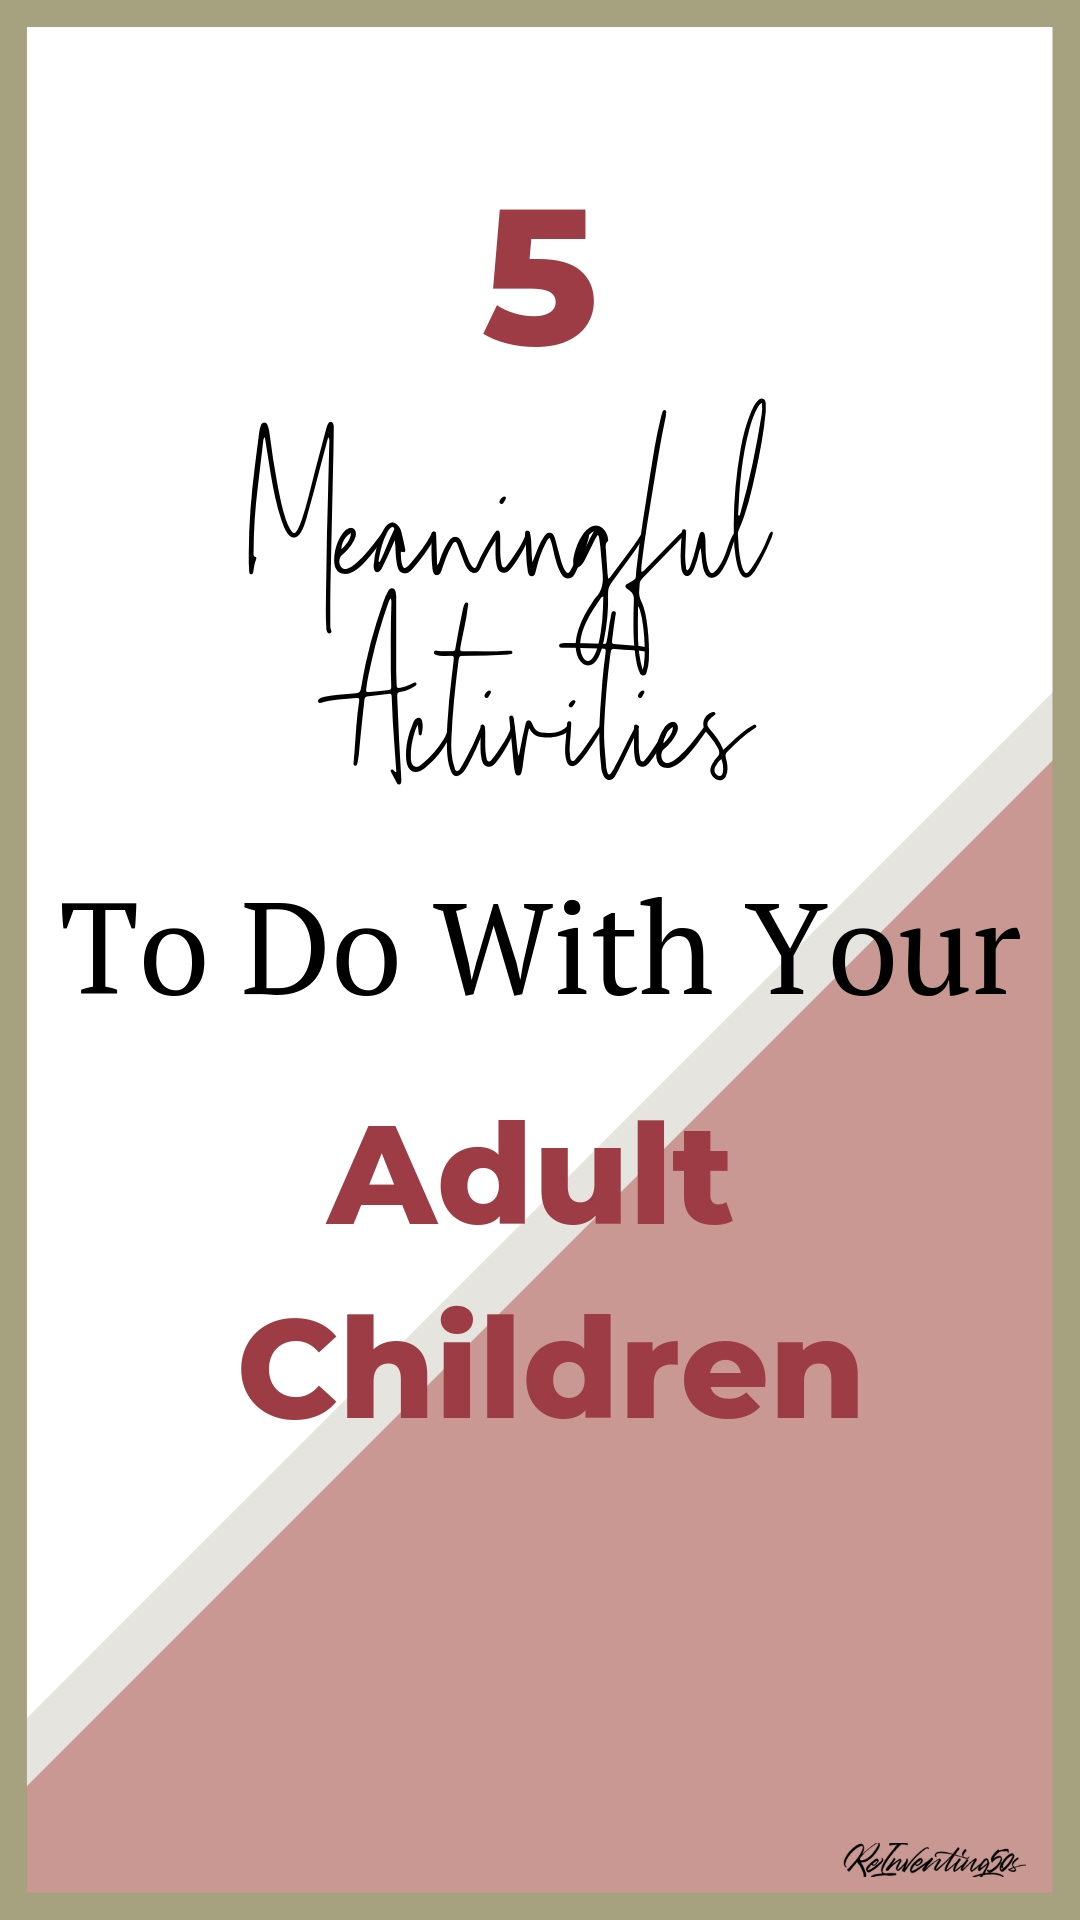 Finding time to spend with your adult children is hard.  Make your time with them meaningful with these 5 activities